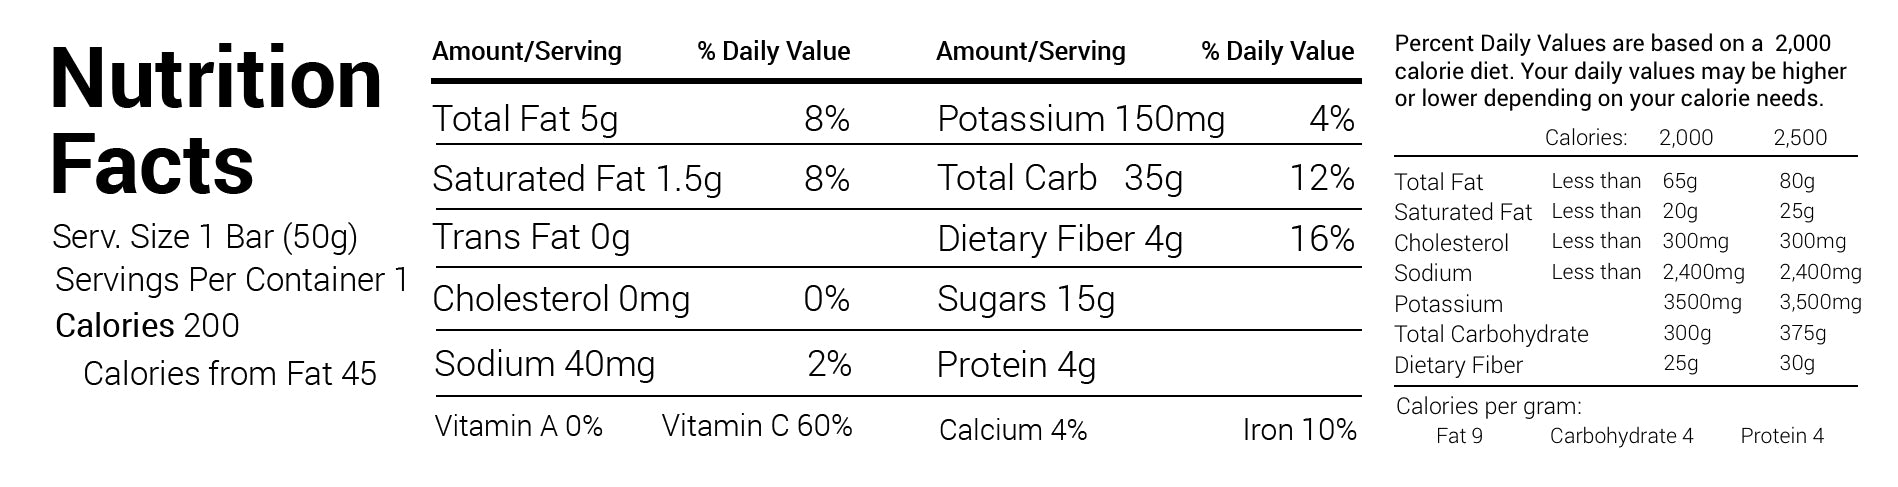 all natural oat bar nutrition facts